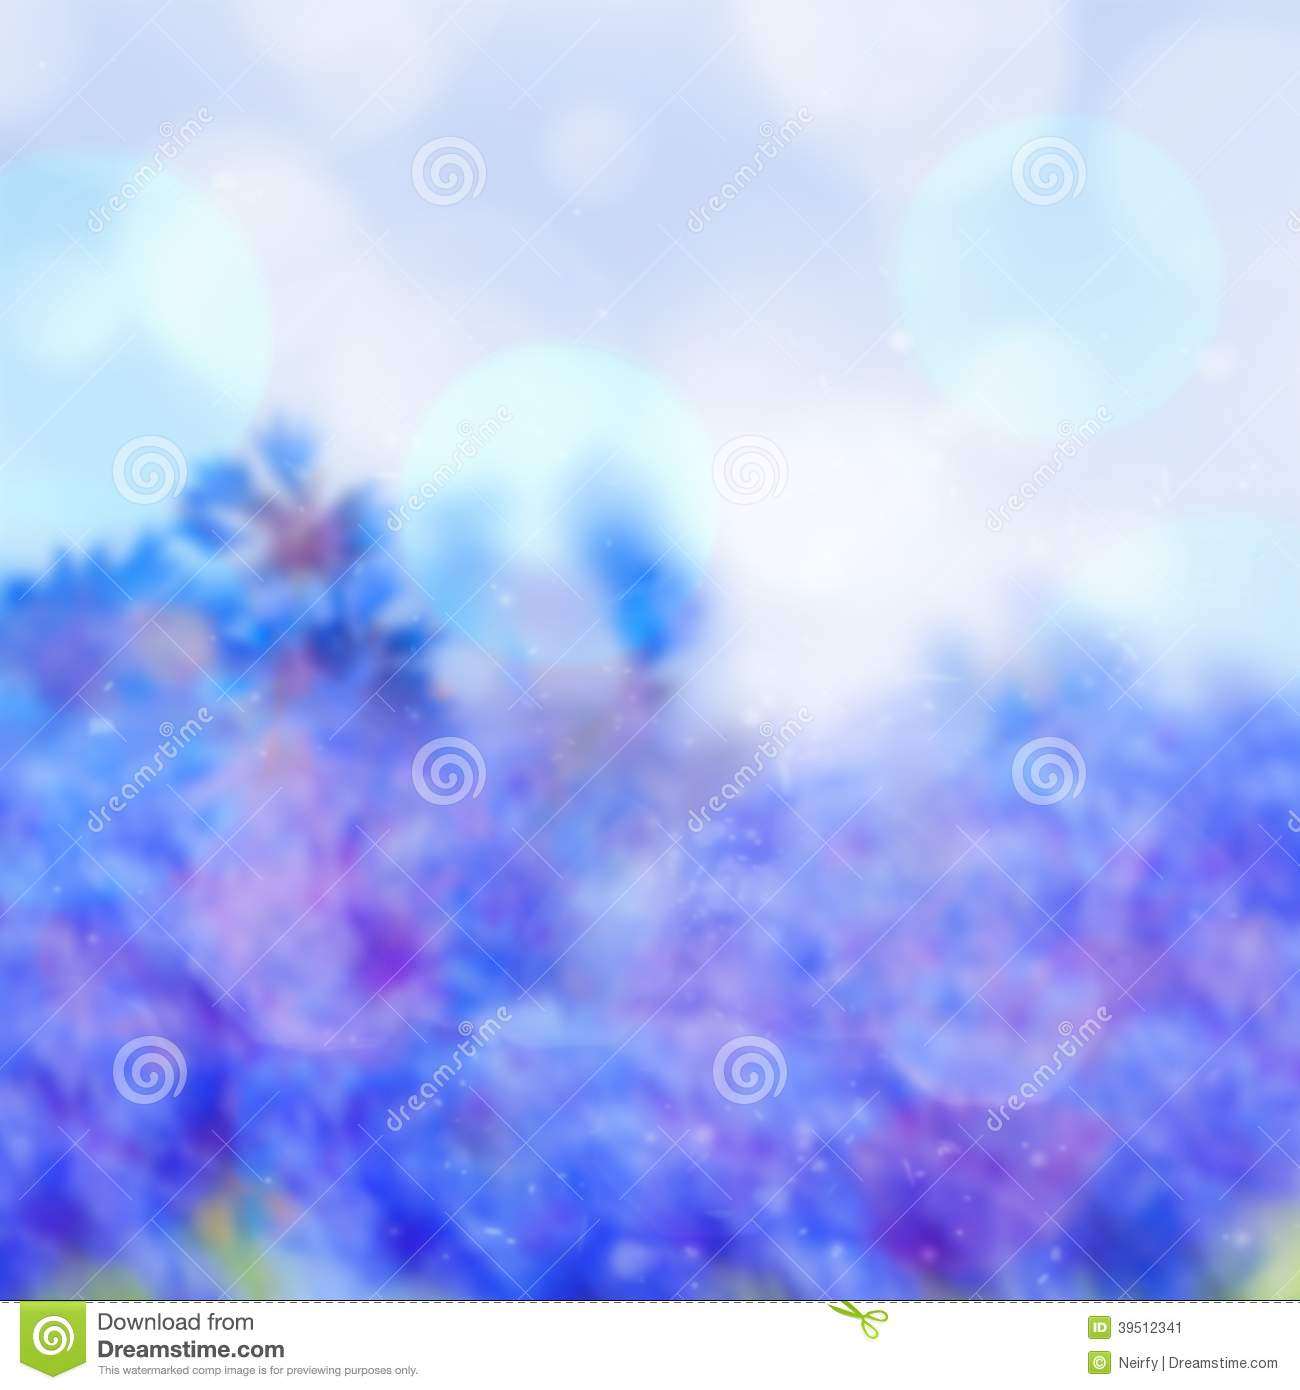 Abstract blue bokeh background with bubbles